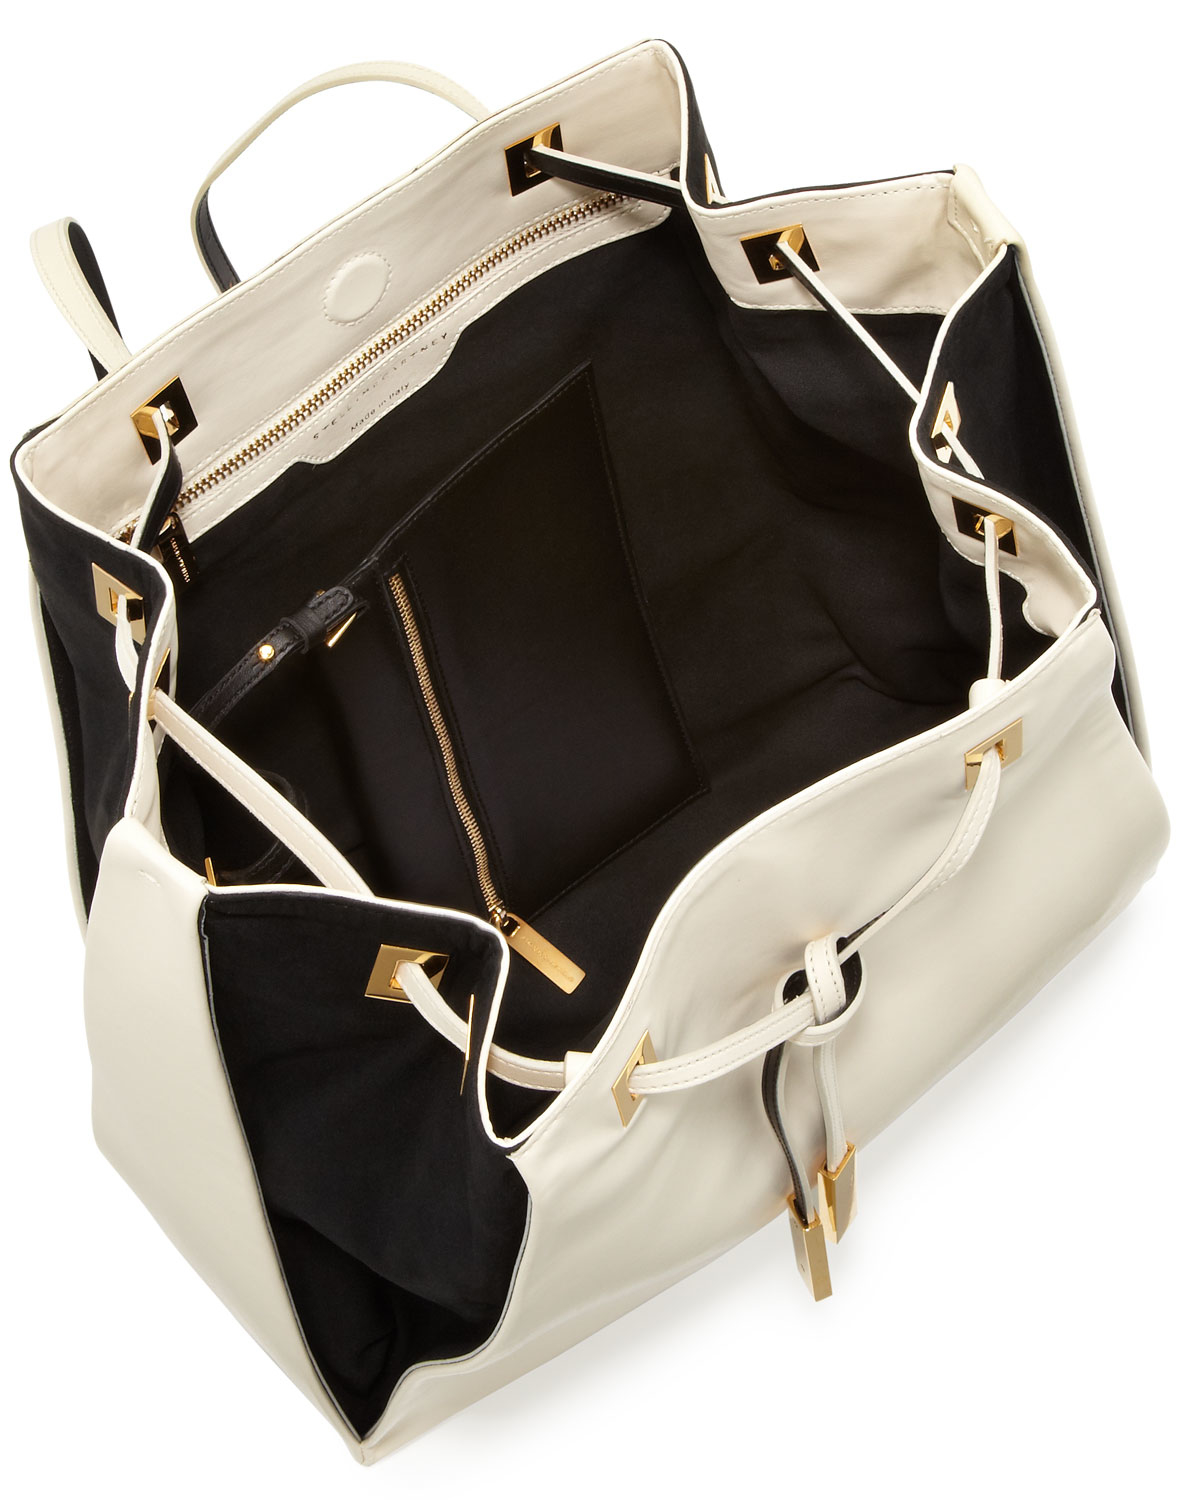 stella mccartney bicolor faux leather rucksack in white lyst. Black Bedroom Furniture Sets. Home Design Ideas